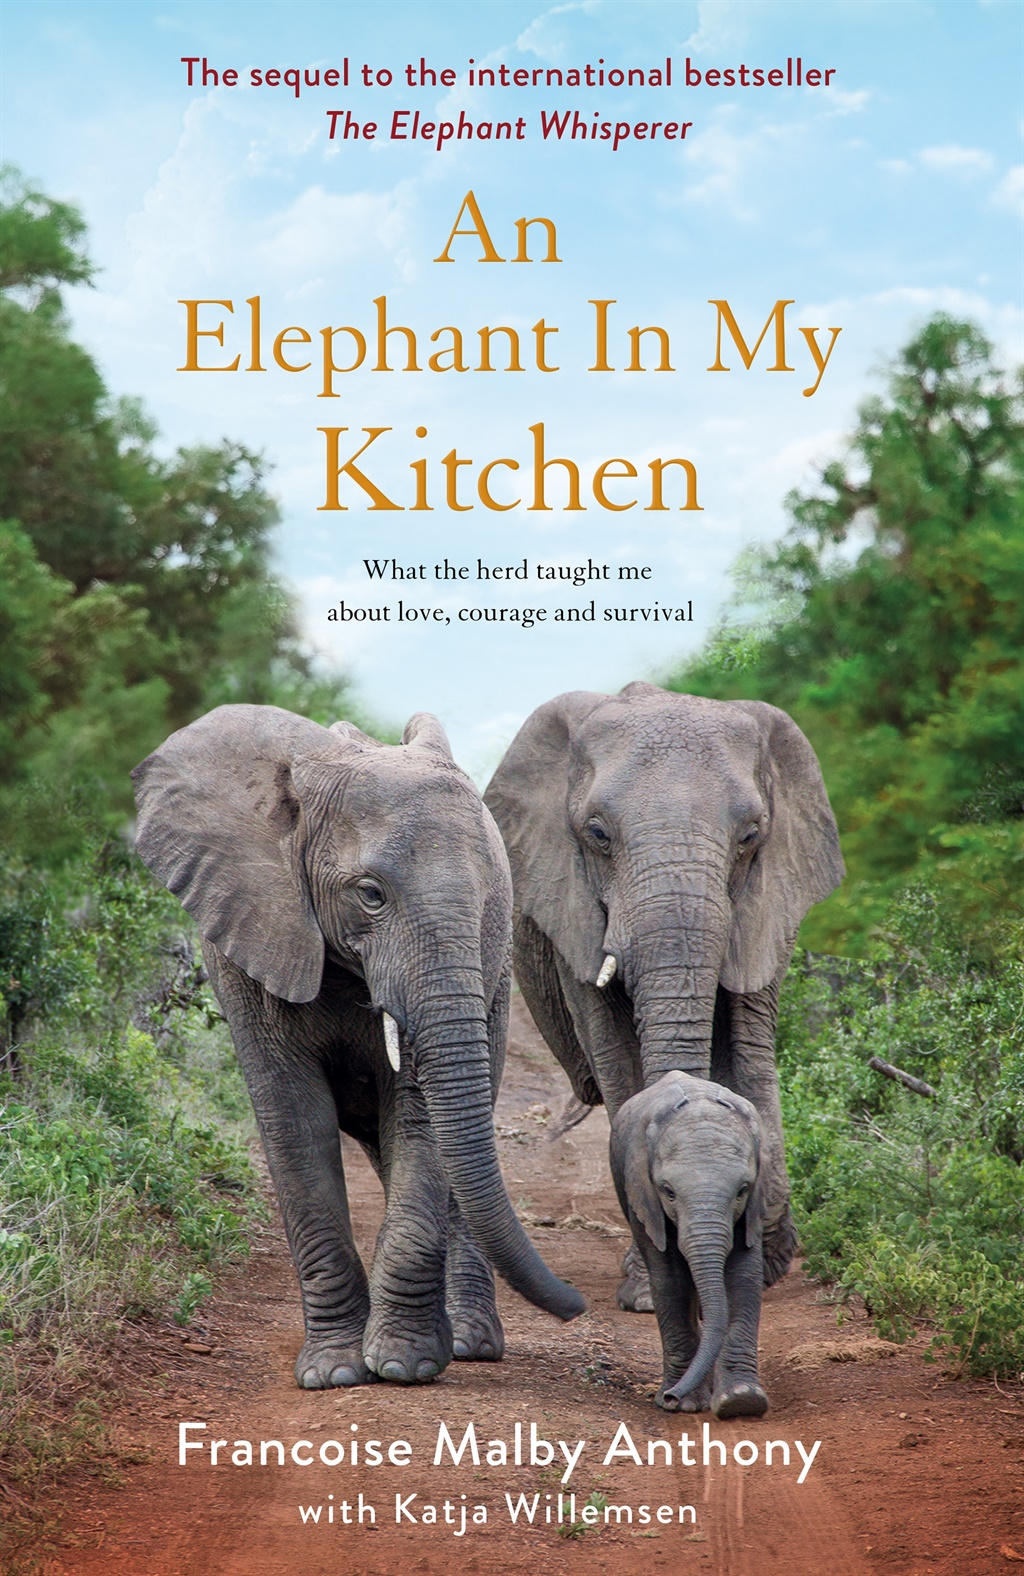 An Elephant In My Kitchen, published by Pan MacMillan.